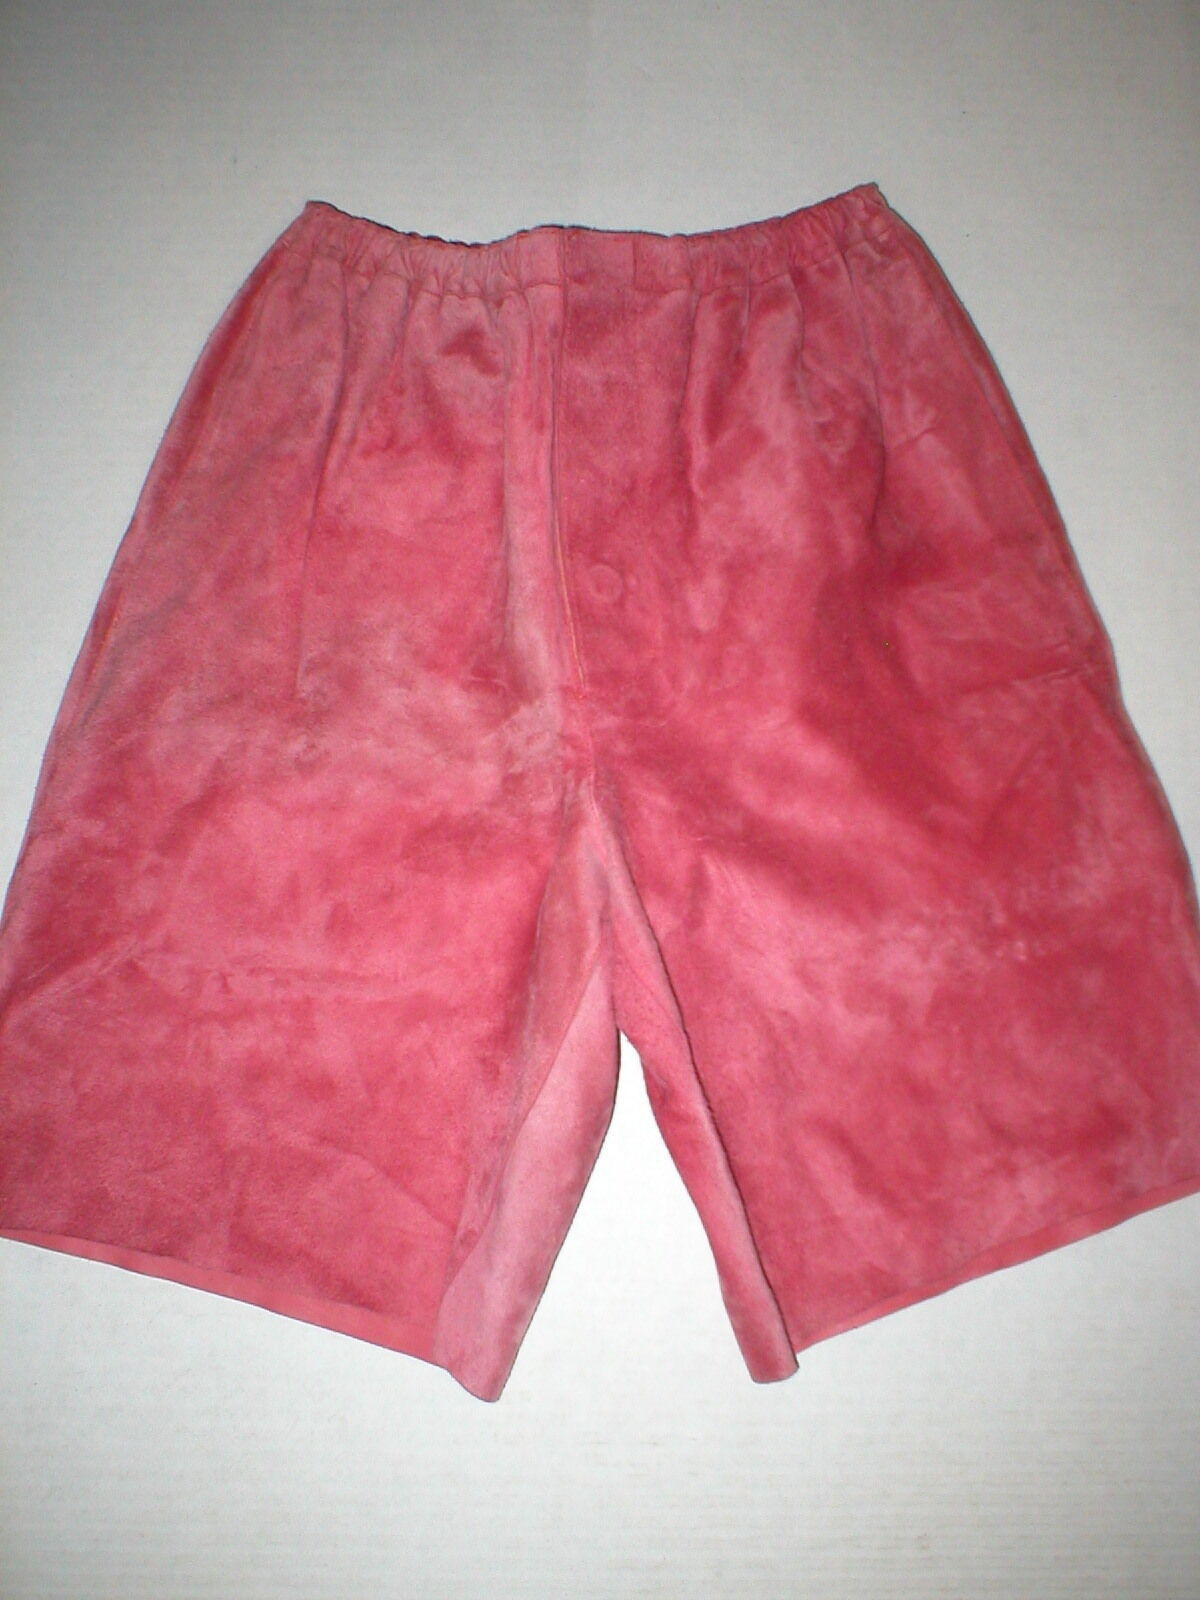 Primary image for WOW New Womens 2 NWT Italy Designer Marni Shorts 38 Pink Rouge Red Leather Suede